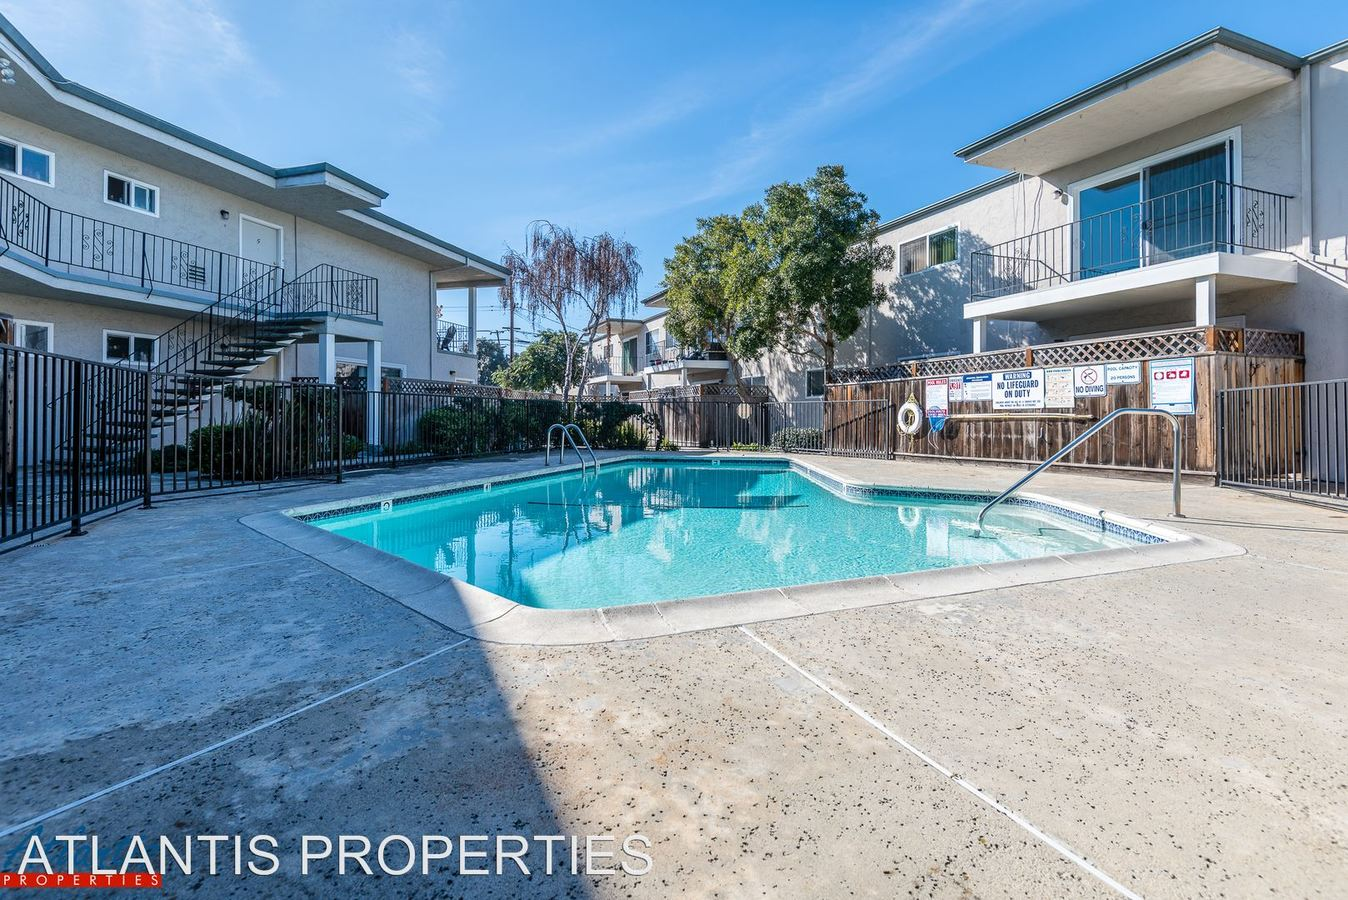 2 Bedrooms 1 Bathroom Apartment for rent at 642 Blythe Court in Sunnyvale, CA